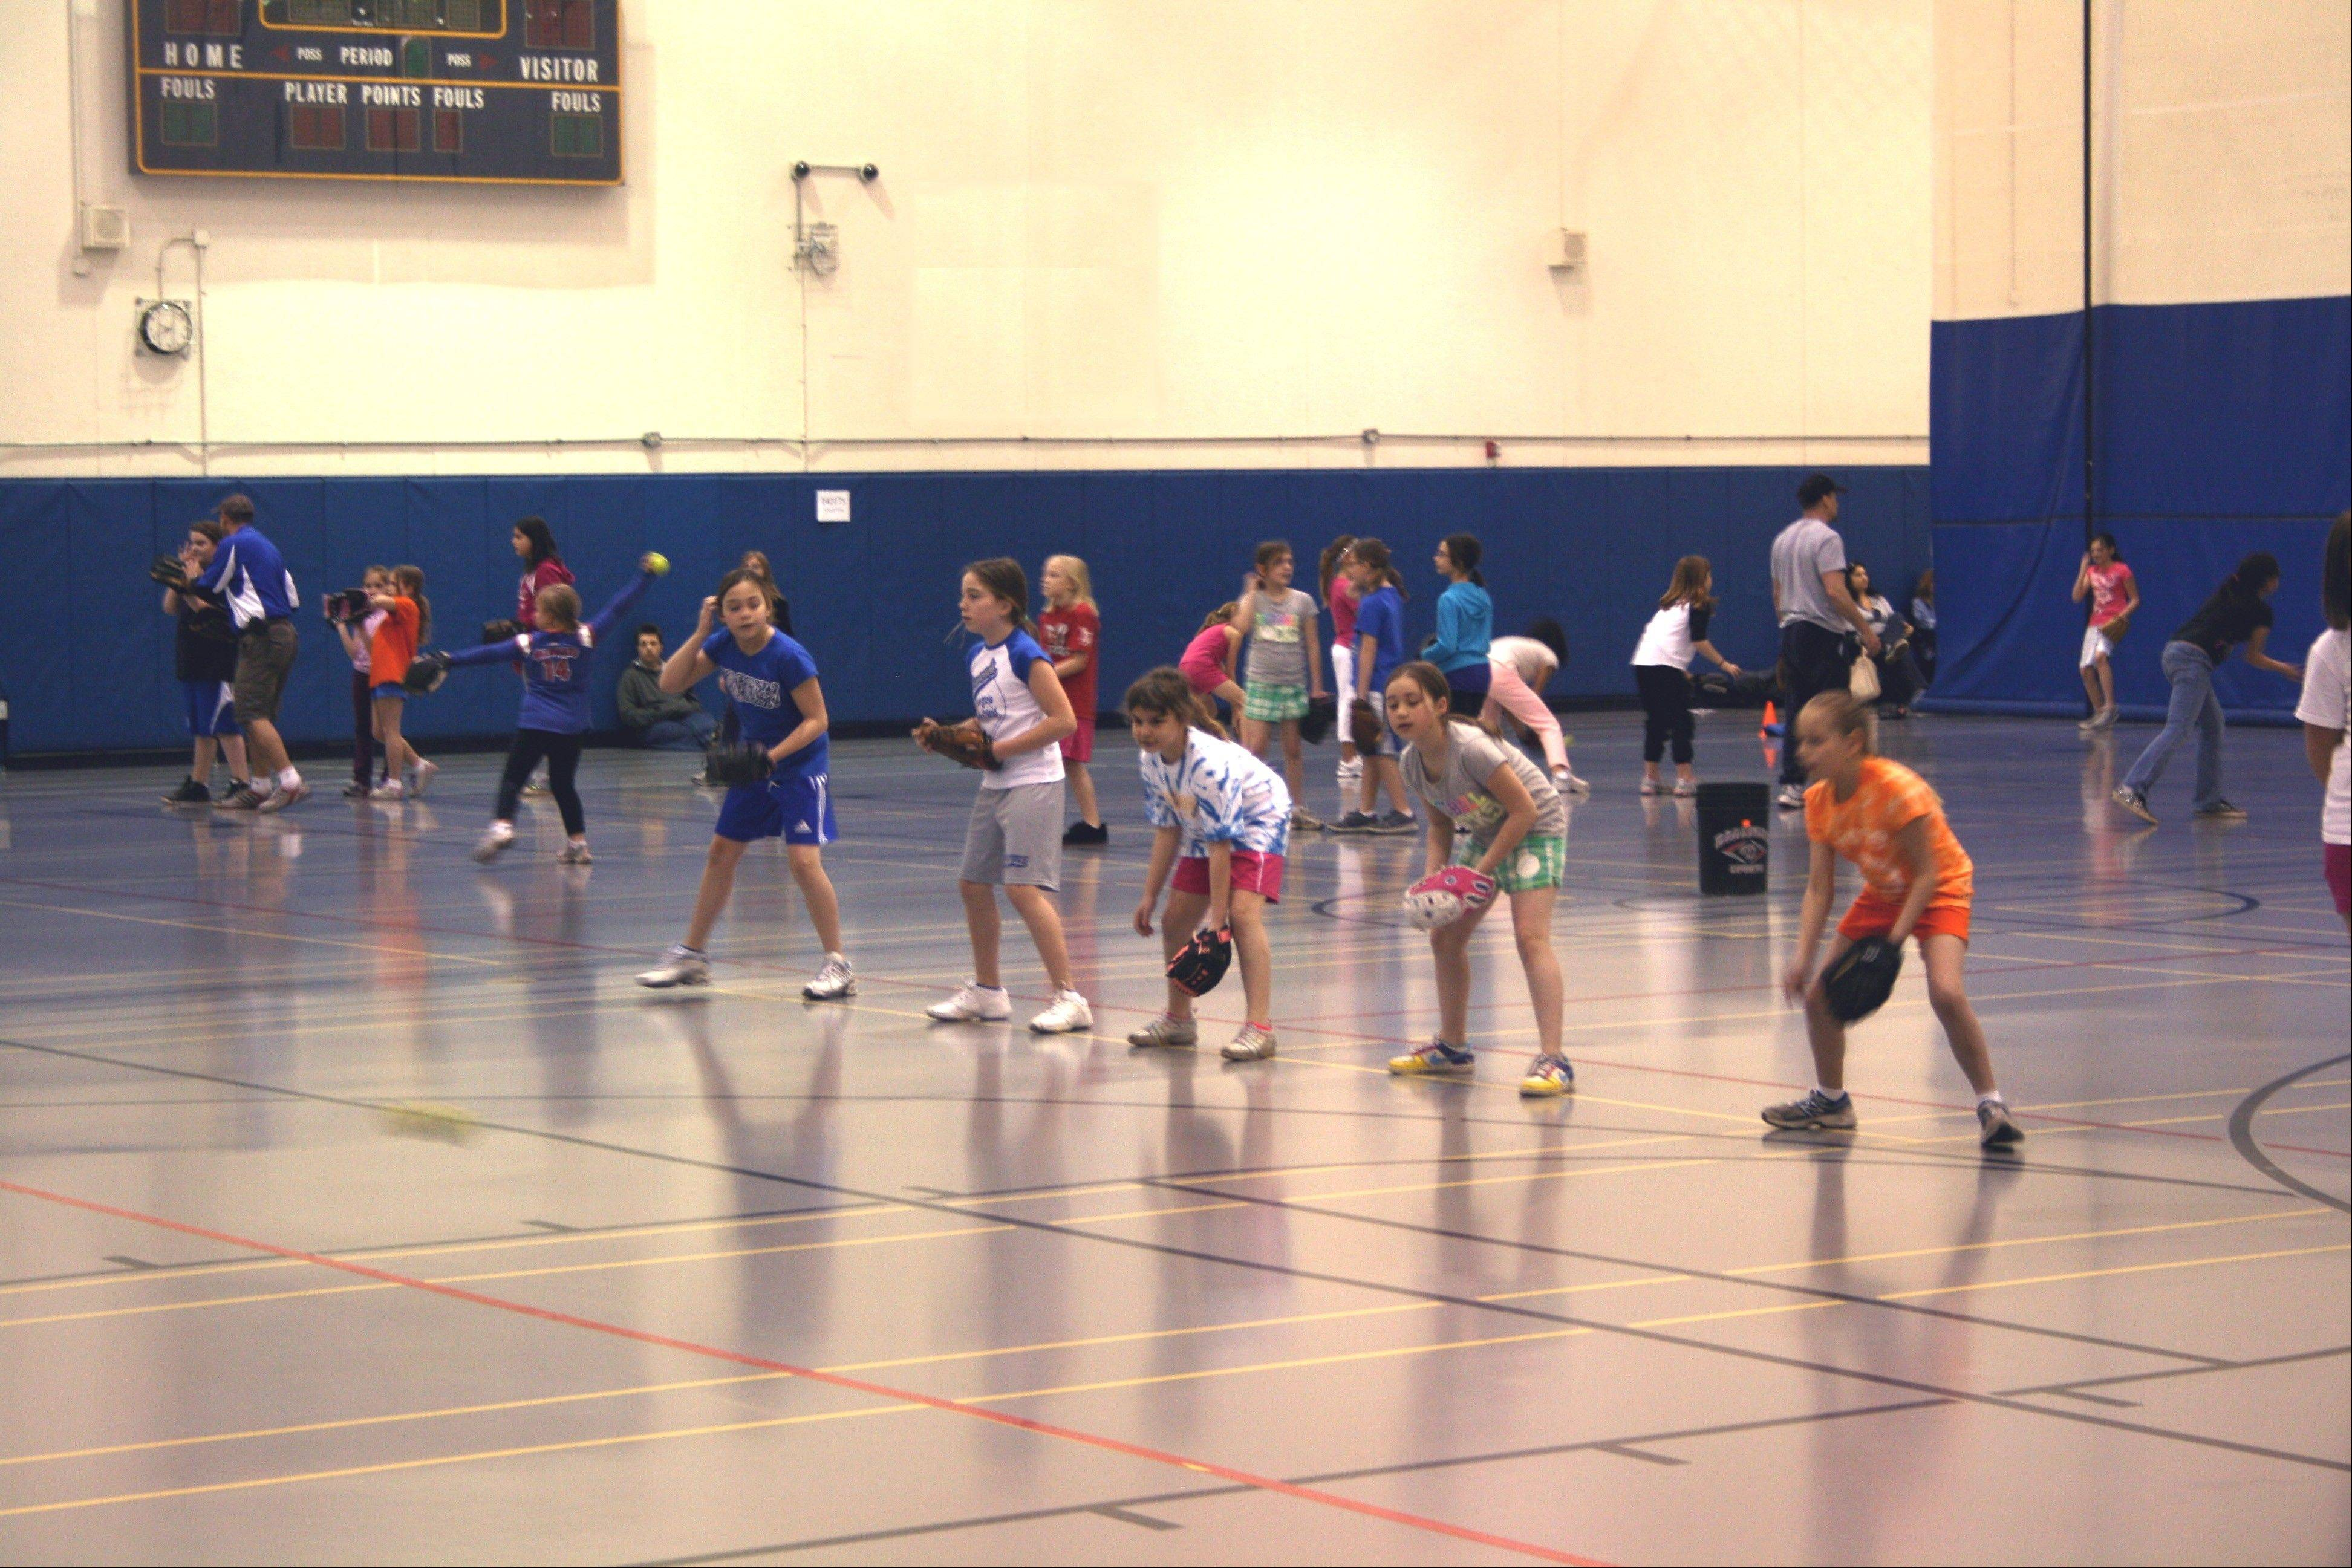 Warren Township Girls Softball held a free player's clinic for more than 100 players, covering hitting, catching, throwing, pitching and fielding.